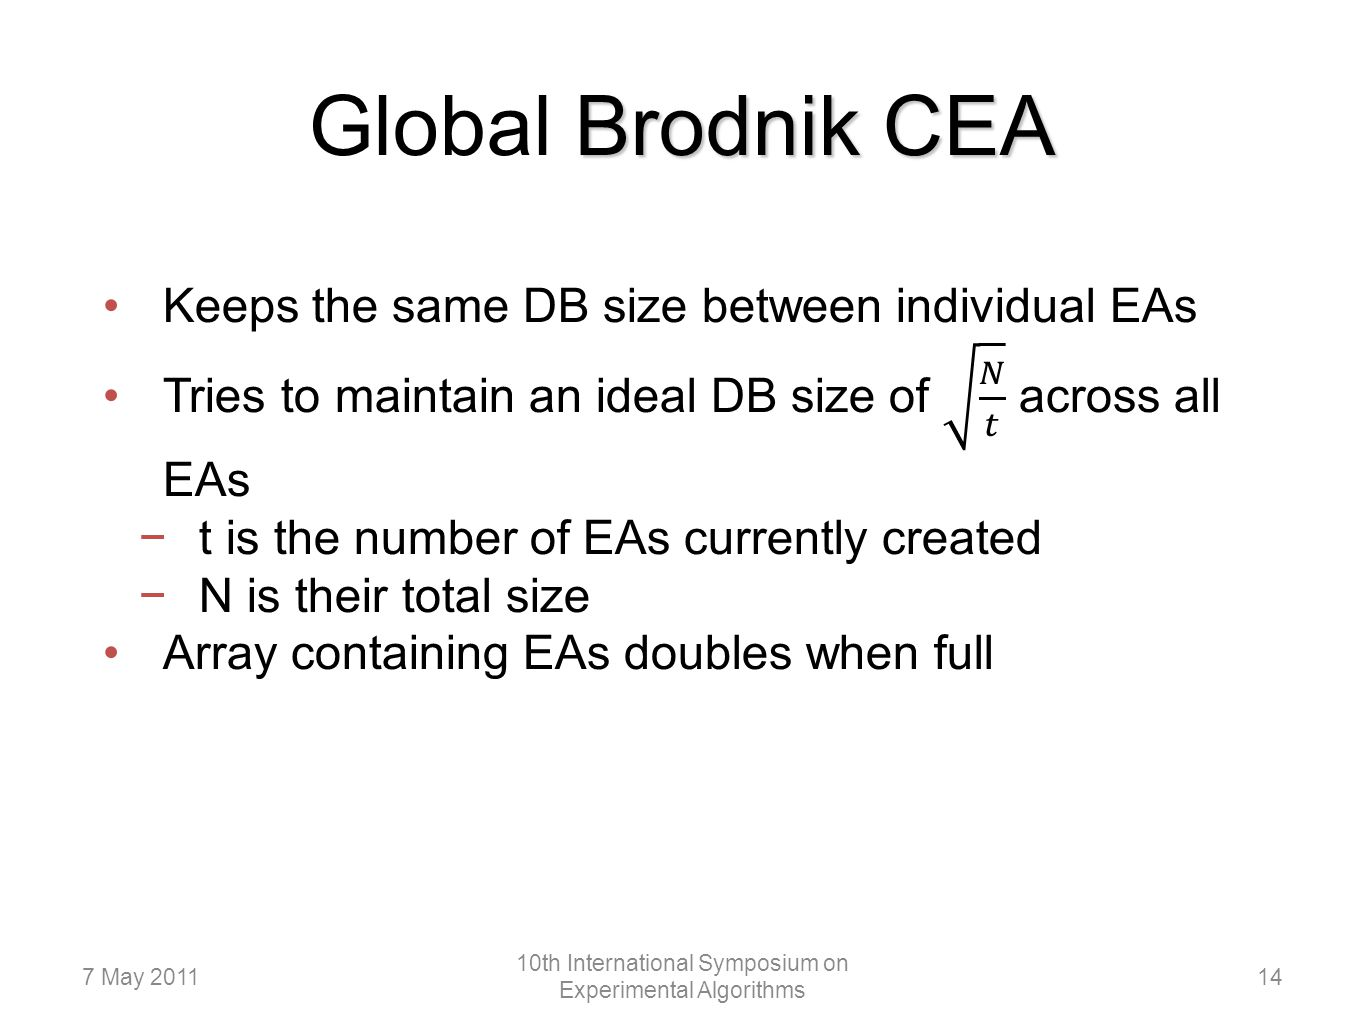 Brodnik CEA Global Brodnik CEA 147 May 2011 10th International Symposium on Experimental Algorithms